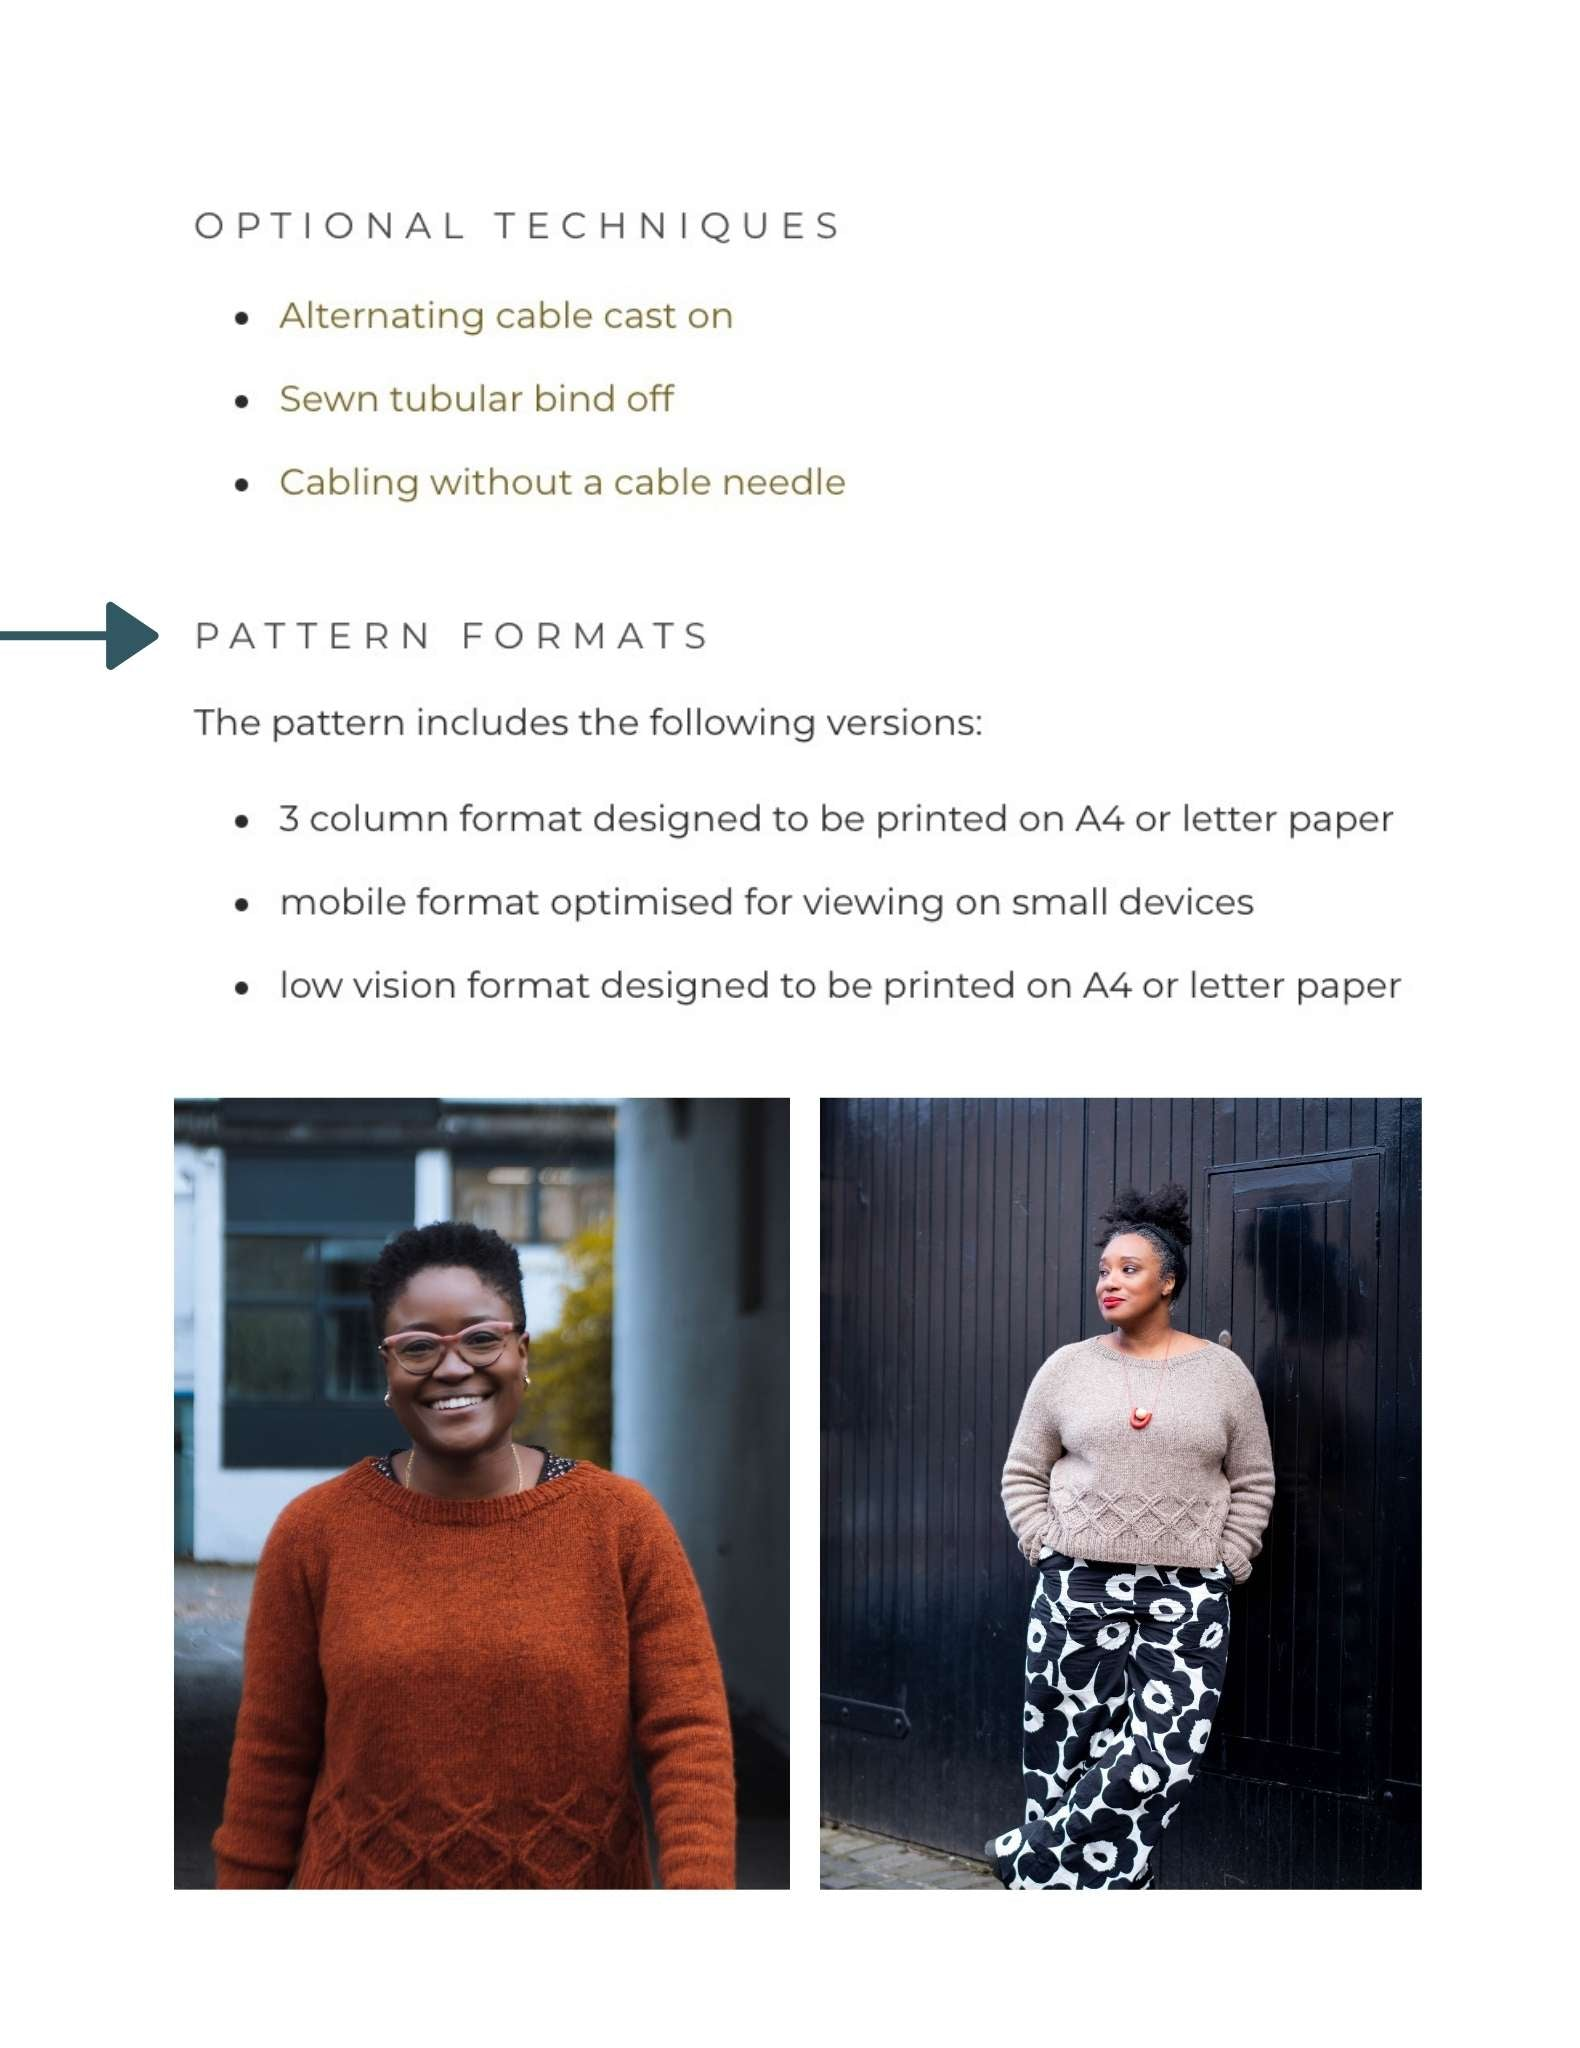 a screenshot showing information about optional techniques, pattern formats and two images of black women wearing an orange sweater and a neutral sweater. An arrow points at the pattern format information.